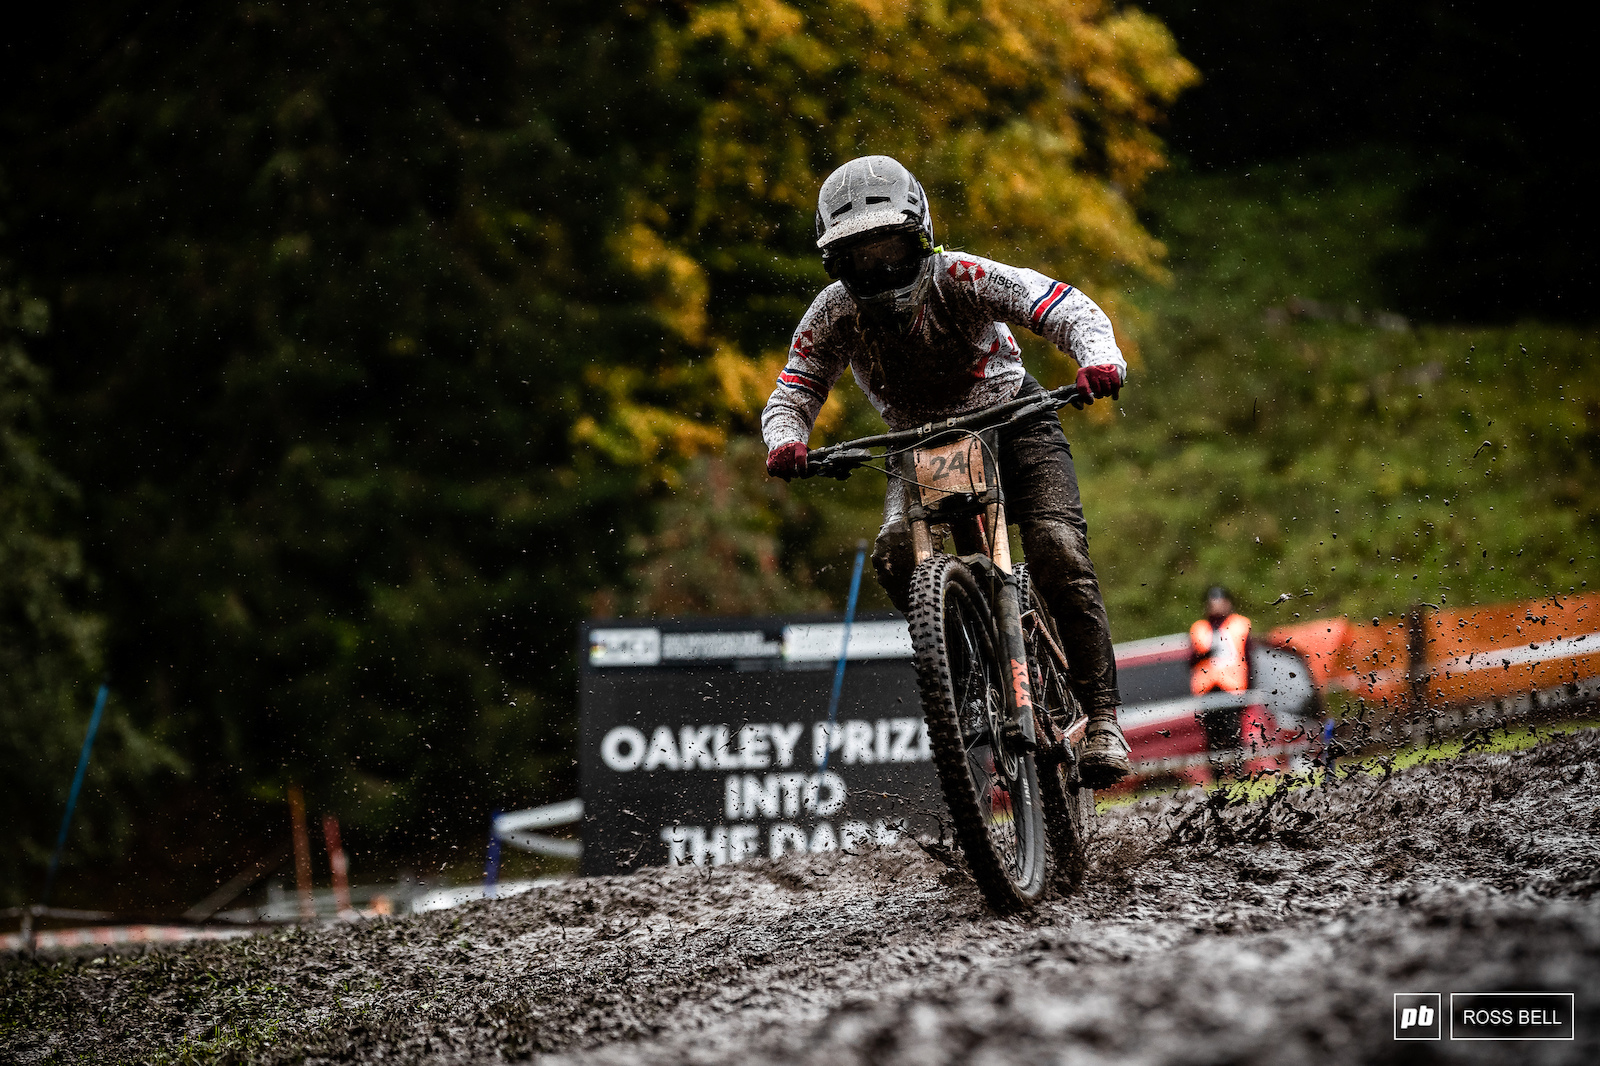 Another Scottish rider doing the business today was Mikayla Parton who felt at home in the sloppy conditions to smash her way into 5th.